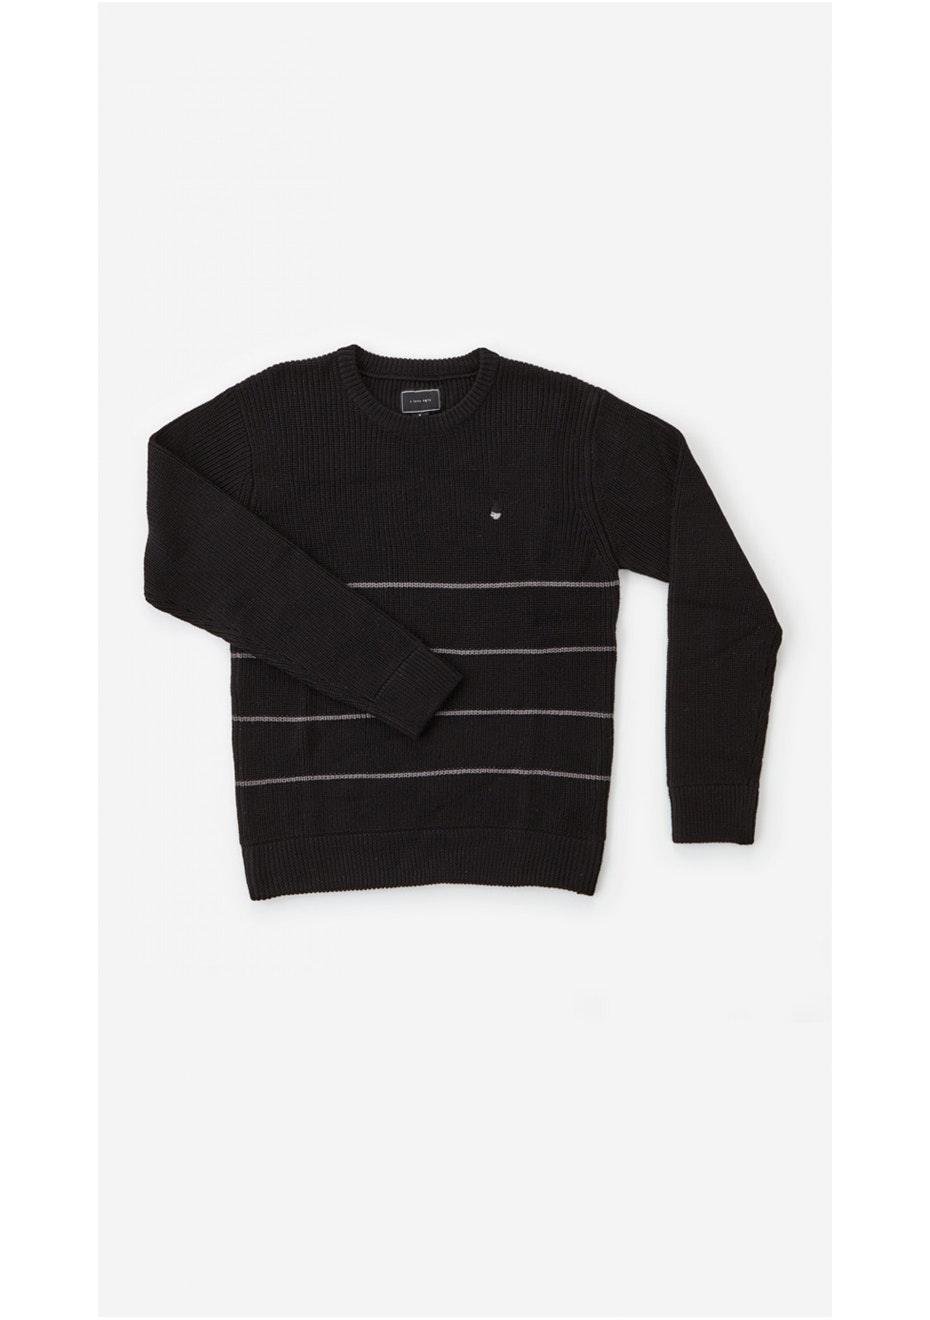 I Love Ugly - Black Stripe Knitted Sweater